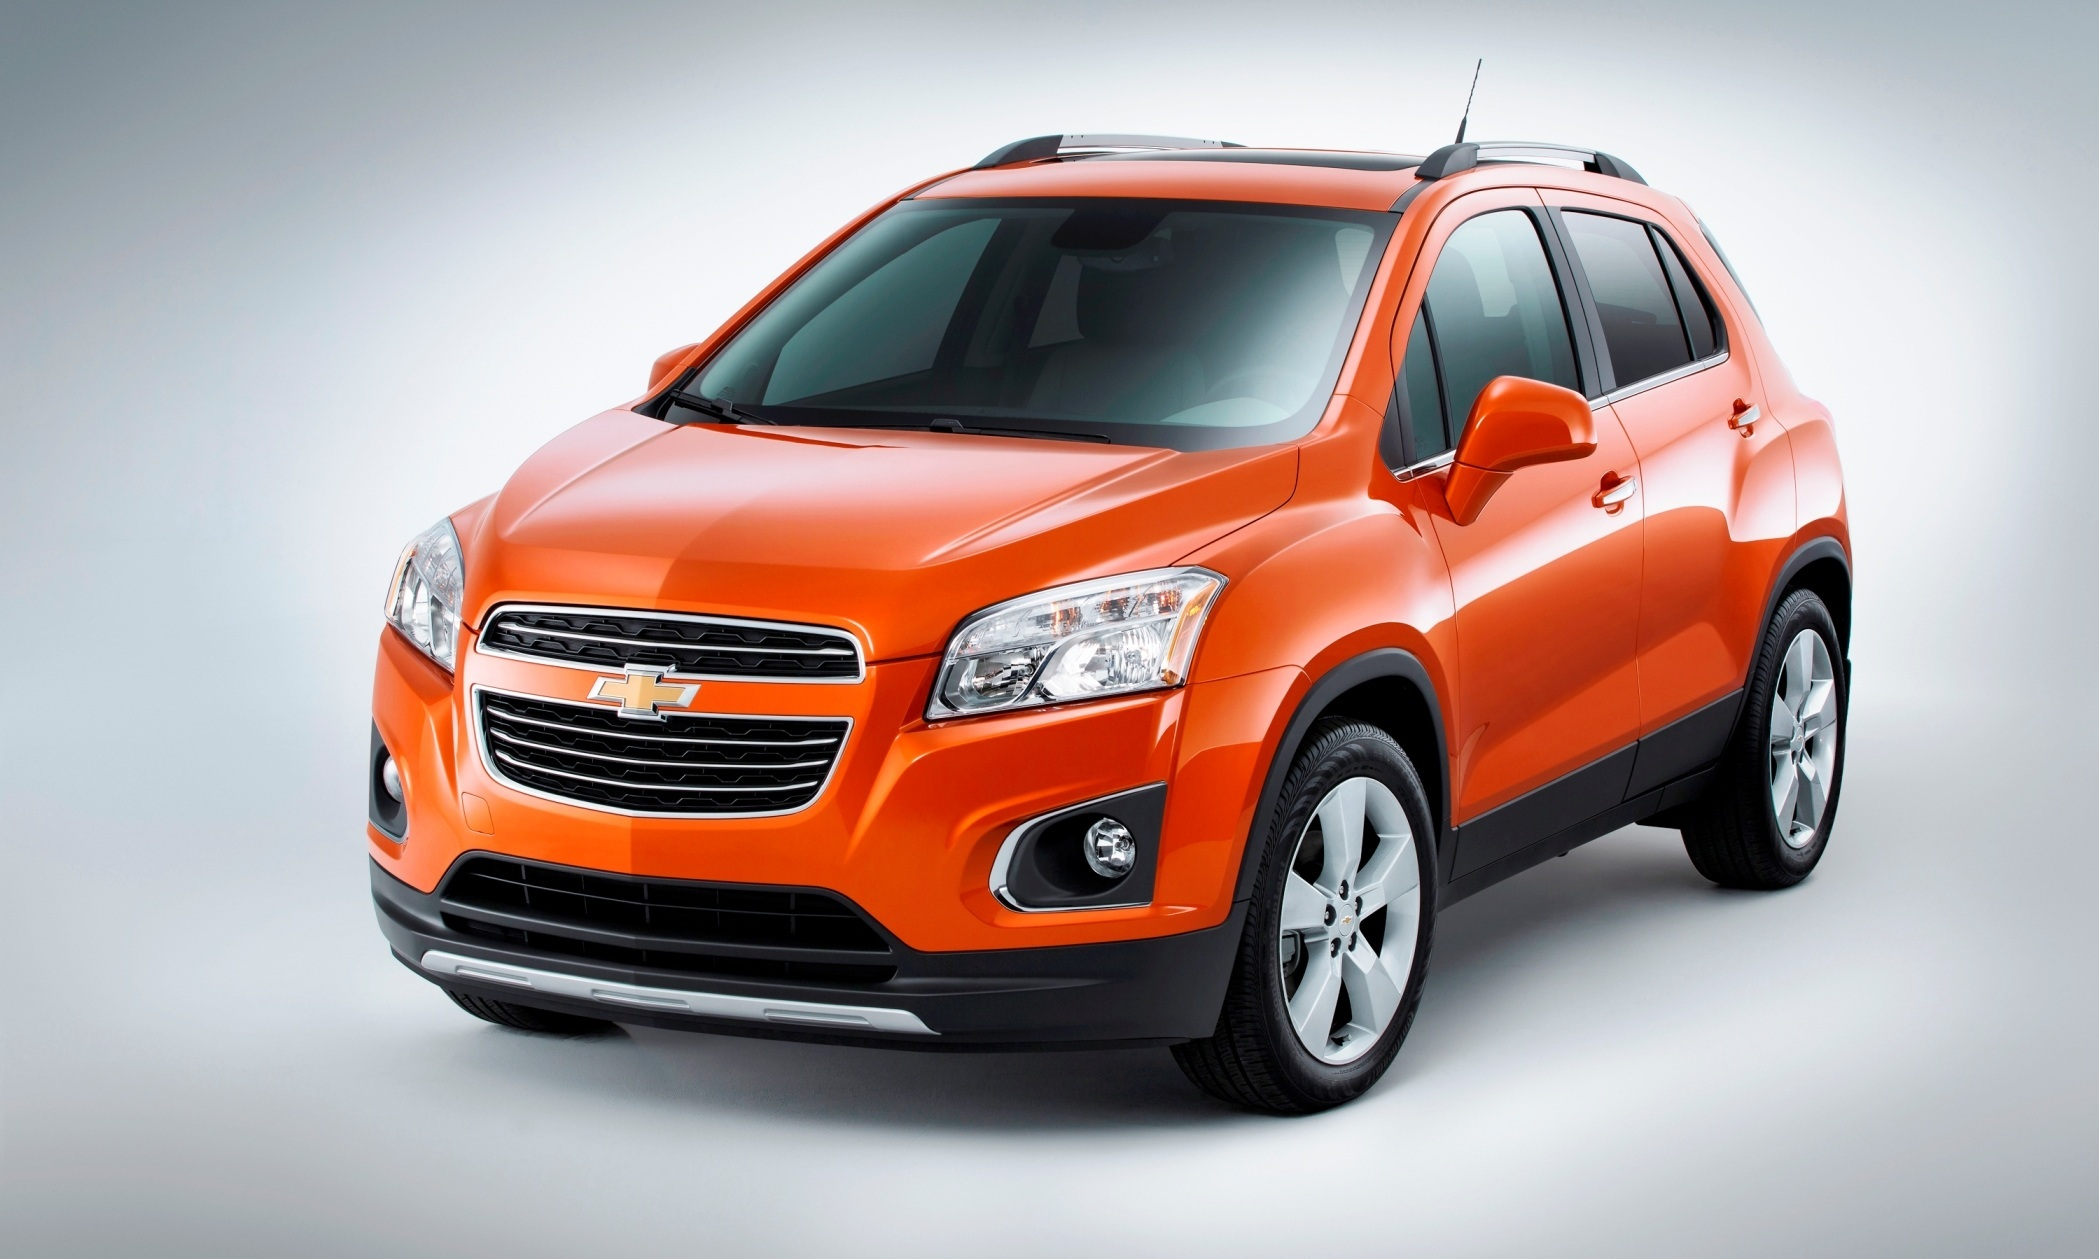 2015 chevrolet trax usa arrival in september to battle juke, honda